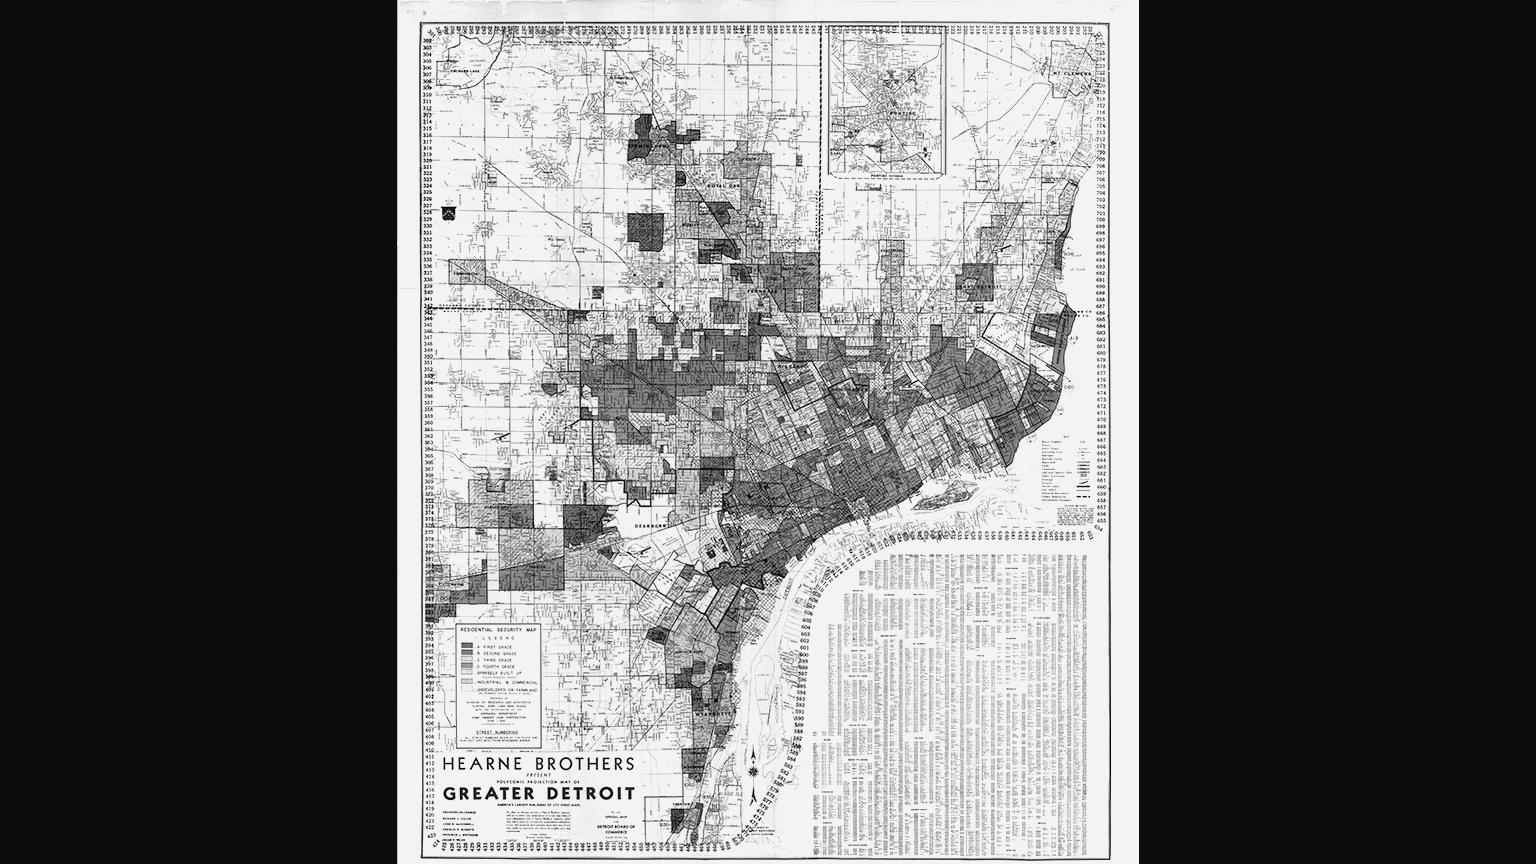 A redlining map of Detroit, created by a New Deal housing agency, to distinguish where African-Americans resided to warn appraisers not to approve loans. (Courtesy of W. W. Norton & Company)